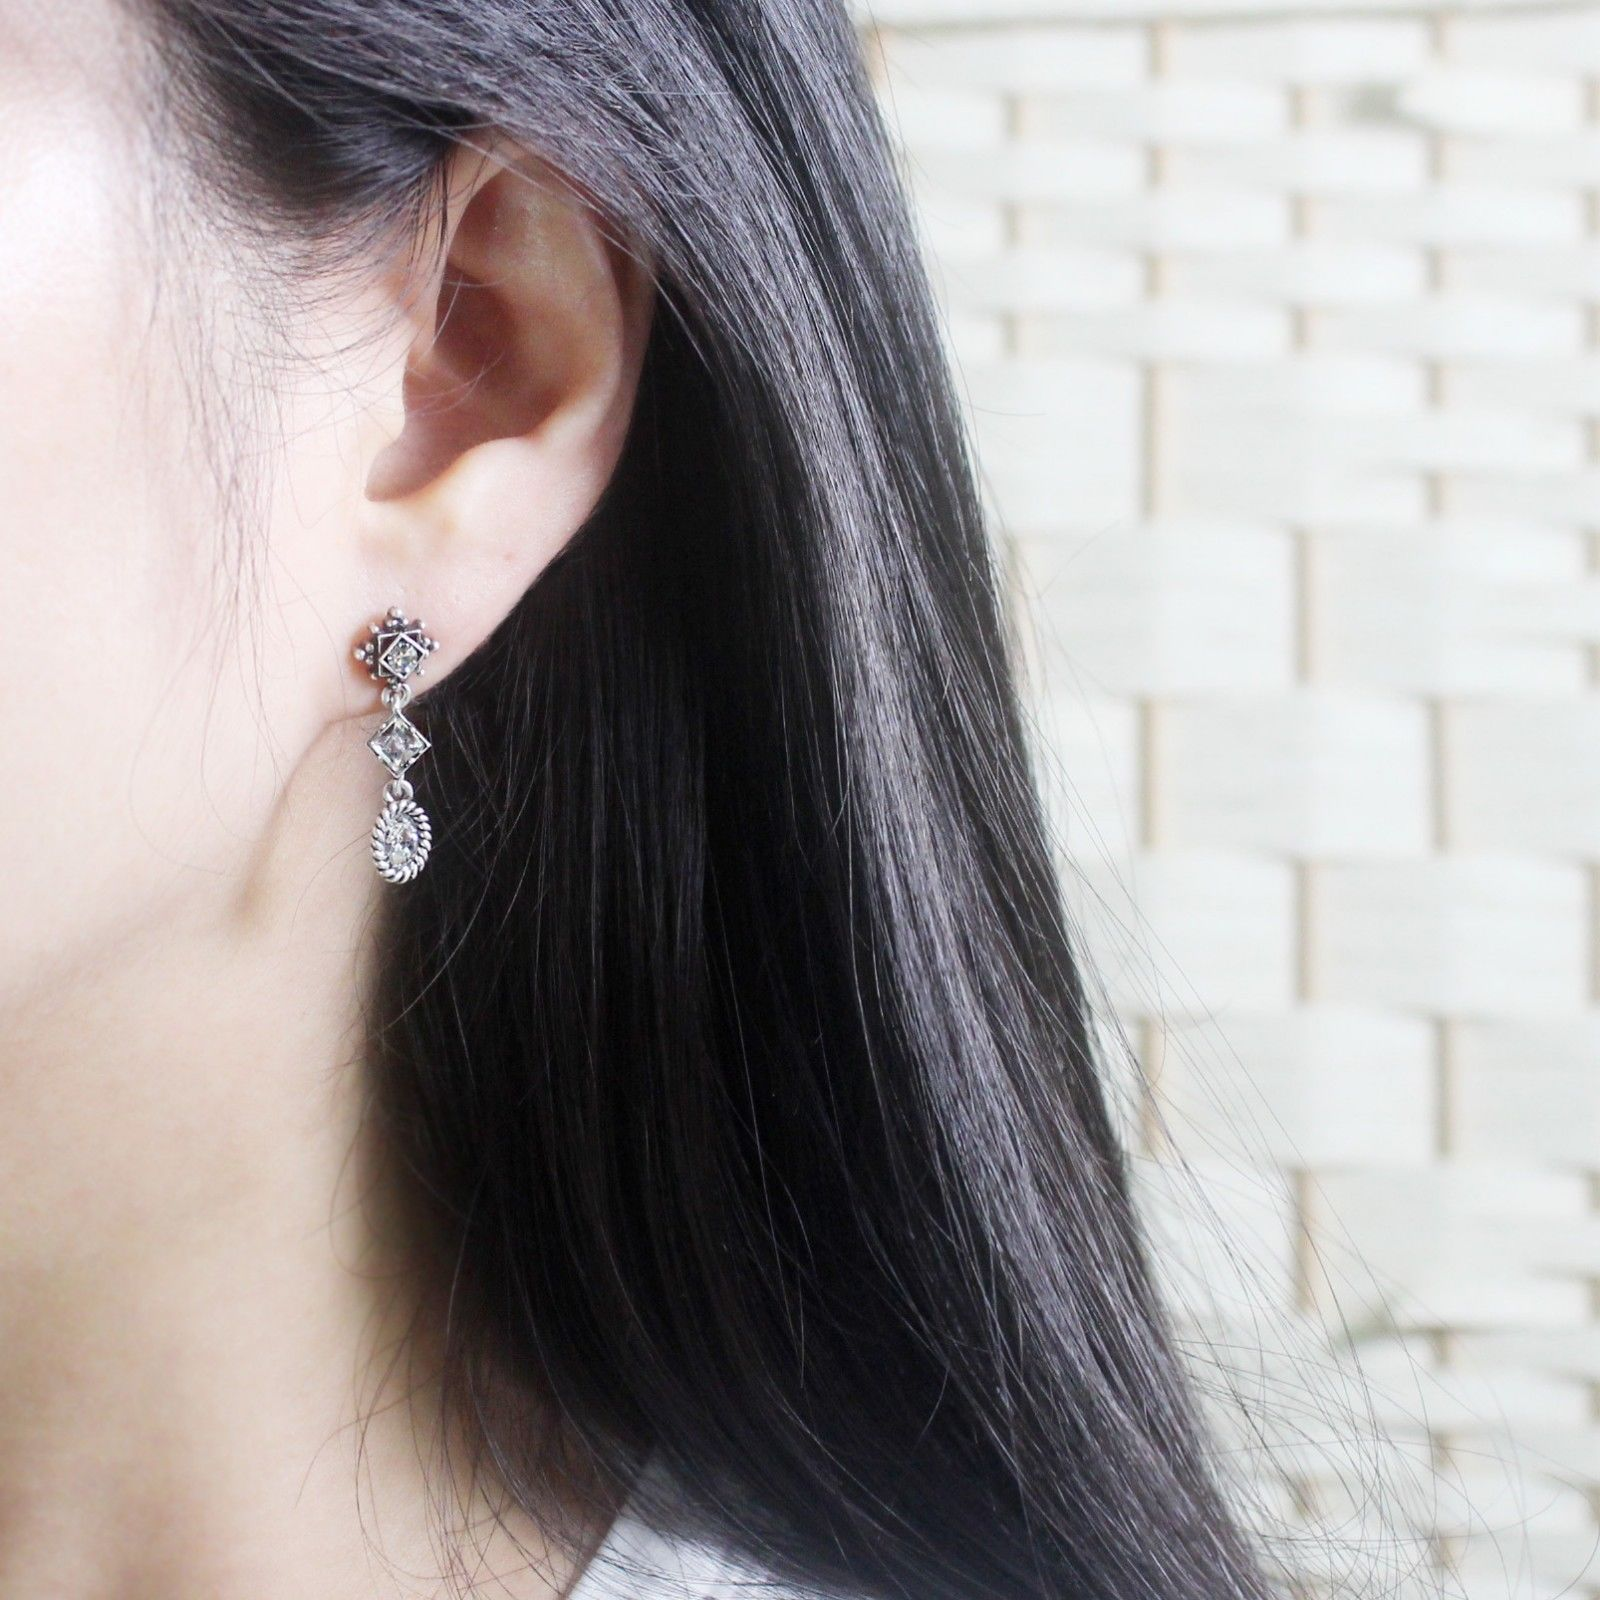 3 Tiered Oval Rhombus Dangle Earrings Made With Swarovski Stone 925 Silver Ear image 8